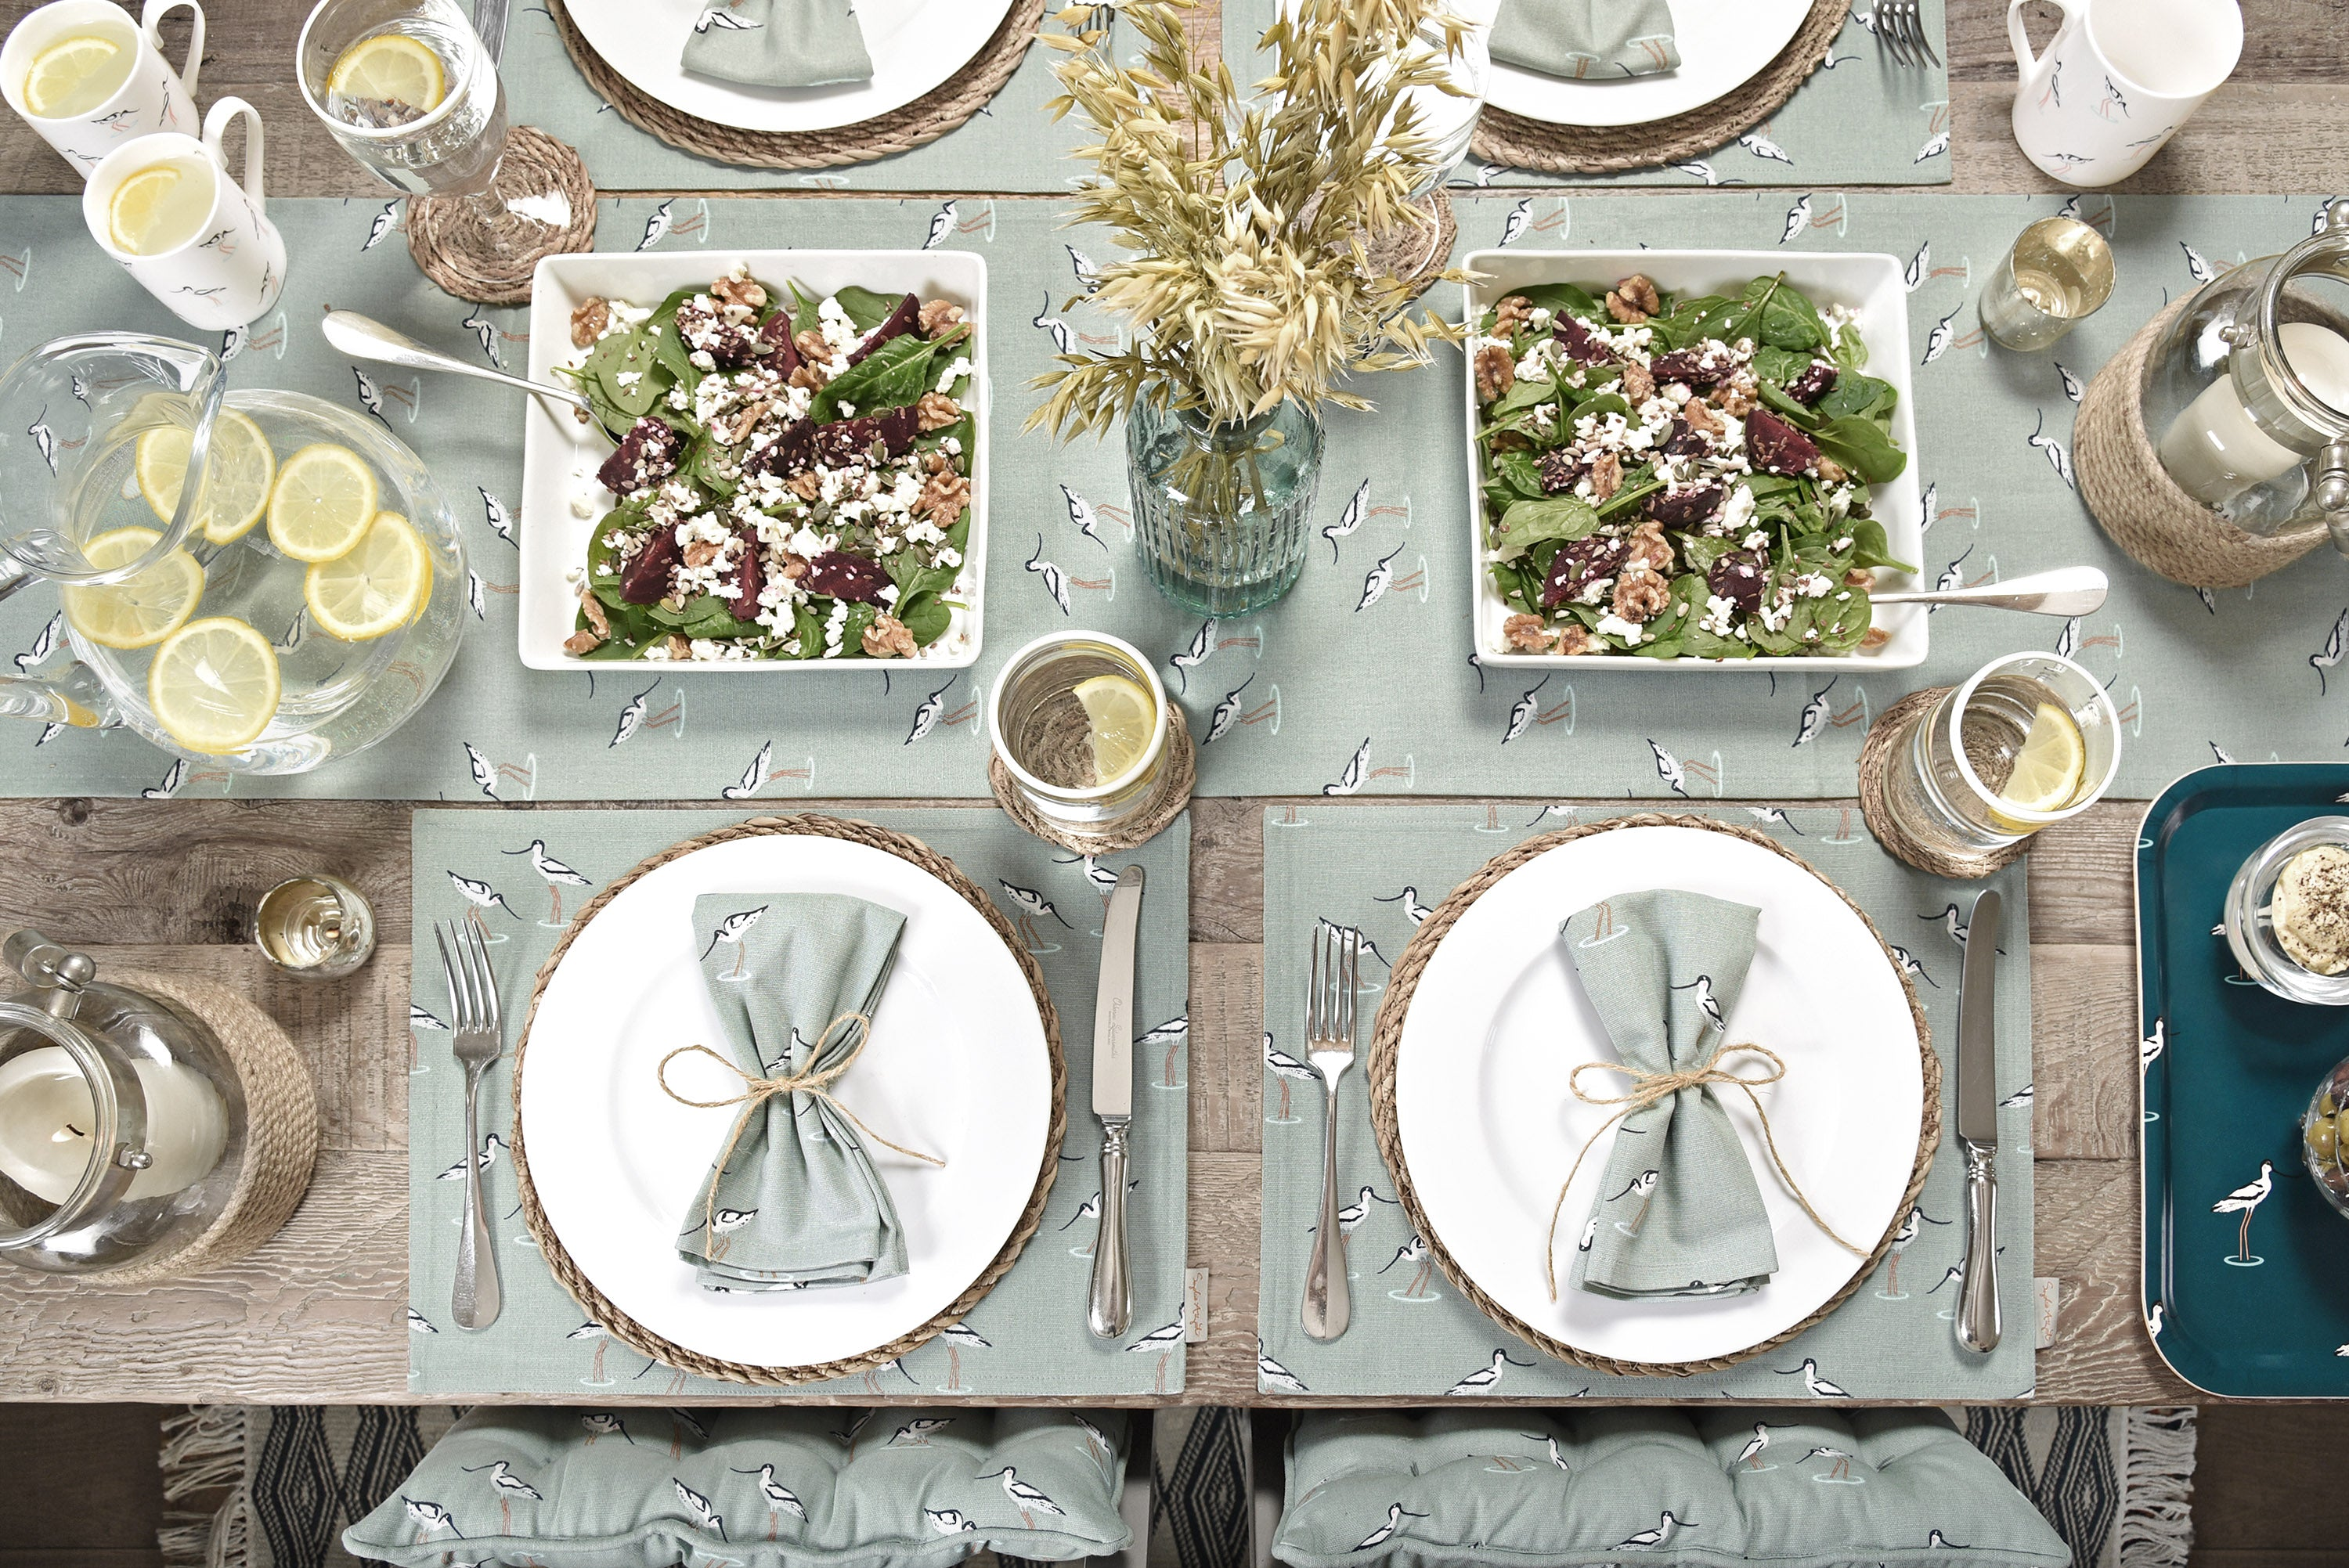 A beautiful table setting, with Sophie Allport's Coastal Birds design, with fabric place mats, napkins and table runner.